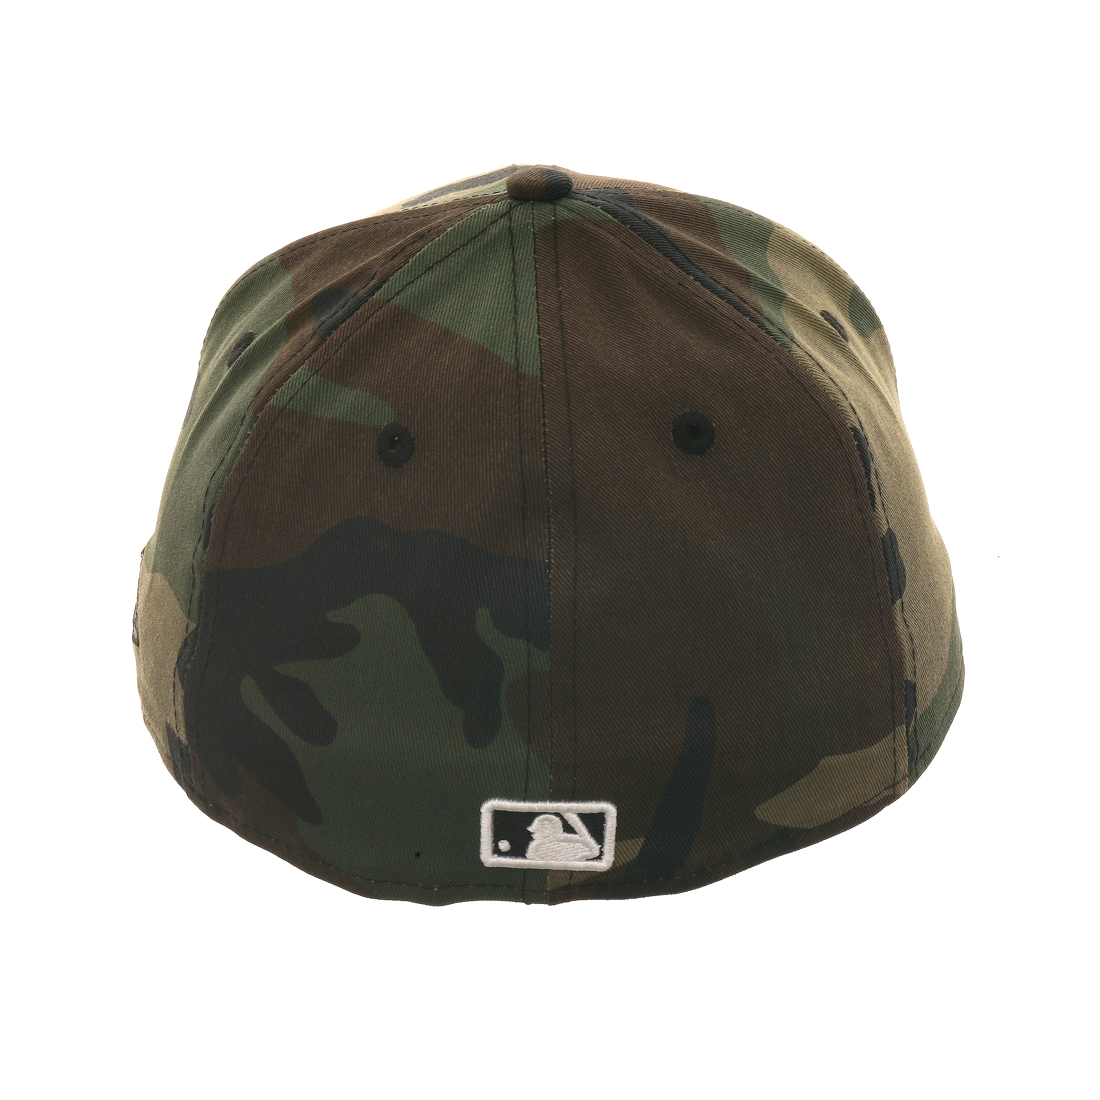 Exclusive New Era 59Fifty Los Angeles Dodgers Metal Matte Badge Hat - Camouflage , Black